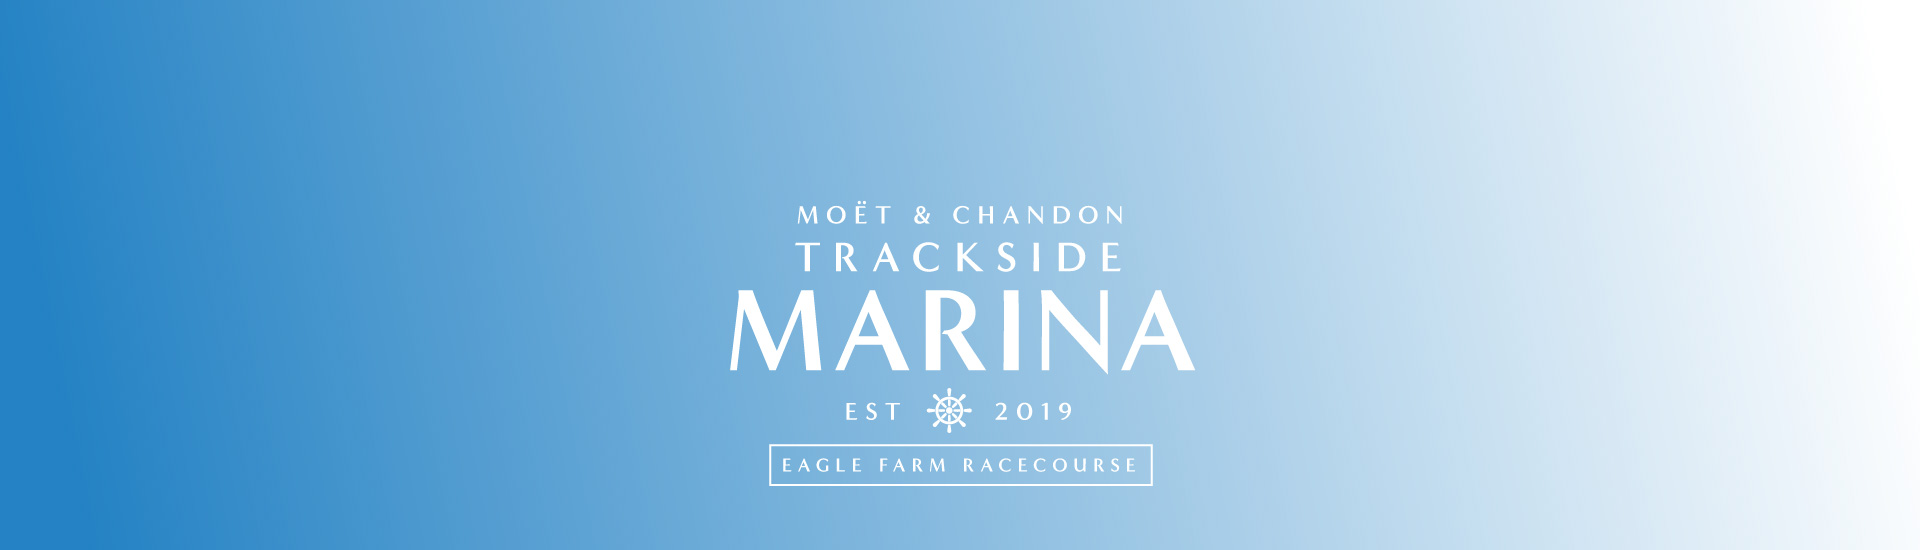 Trackside Marina | Brisbane Racing Club